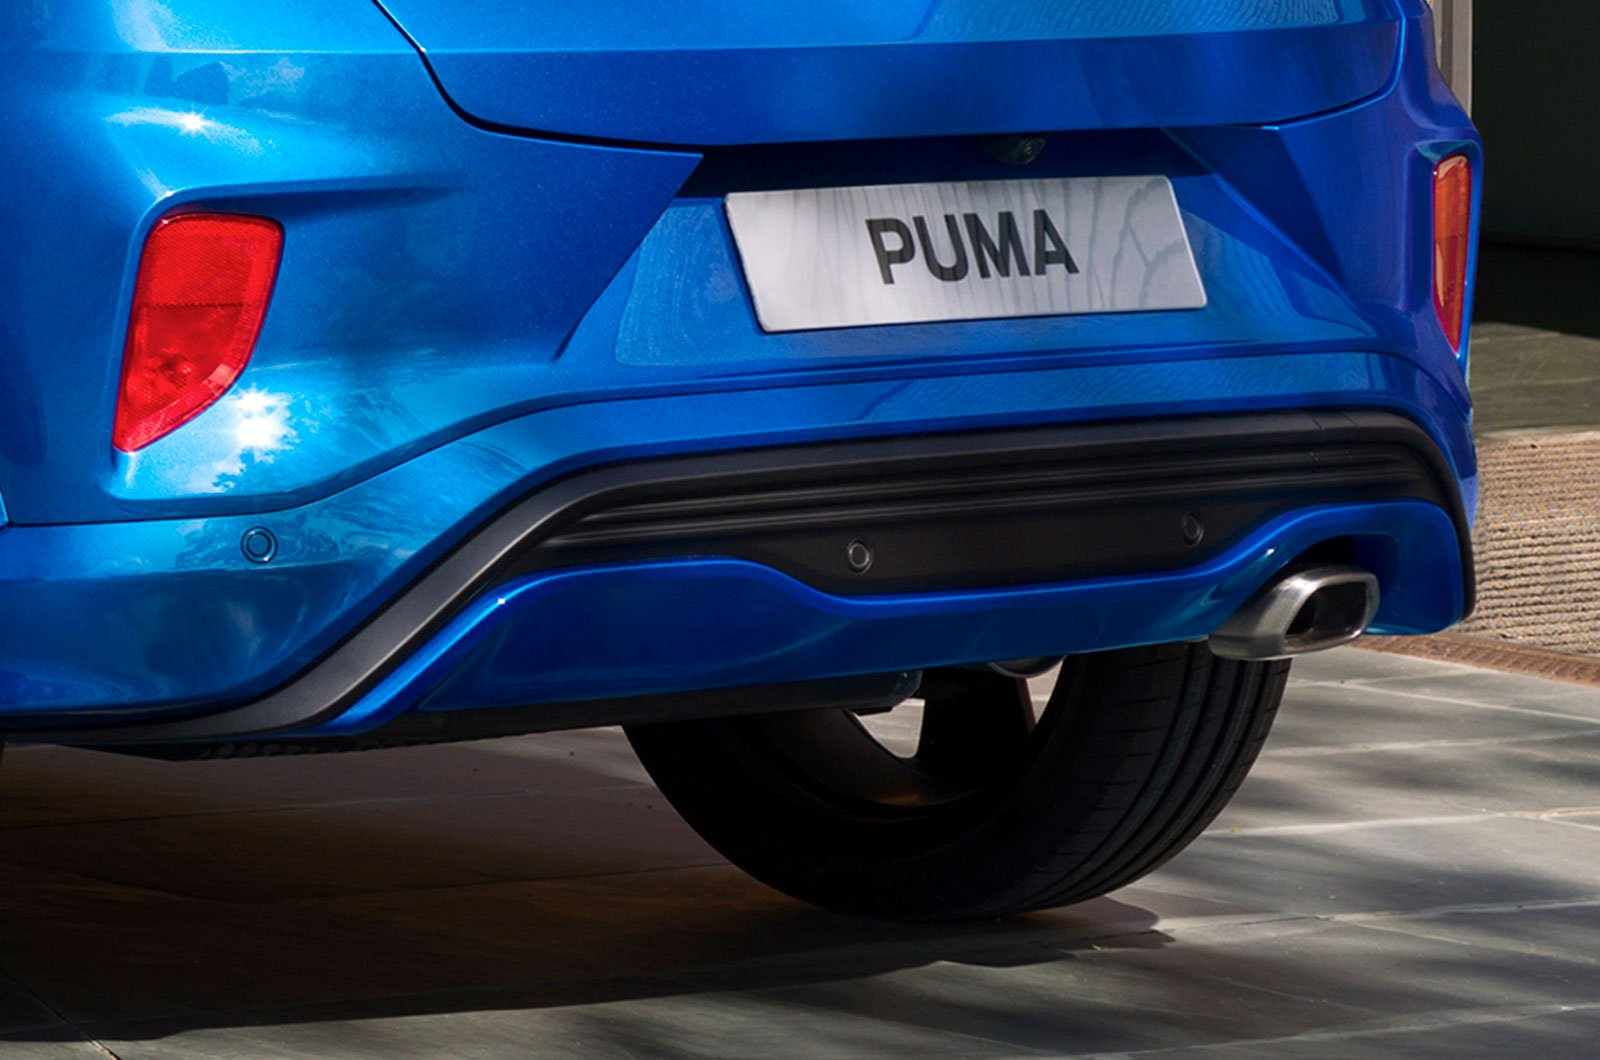 Ford Puma rear bumper